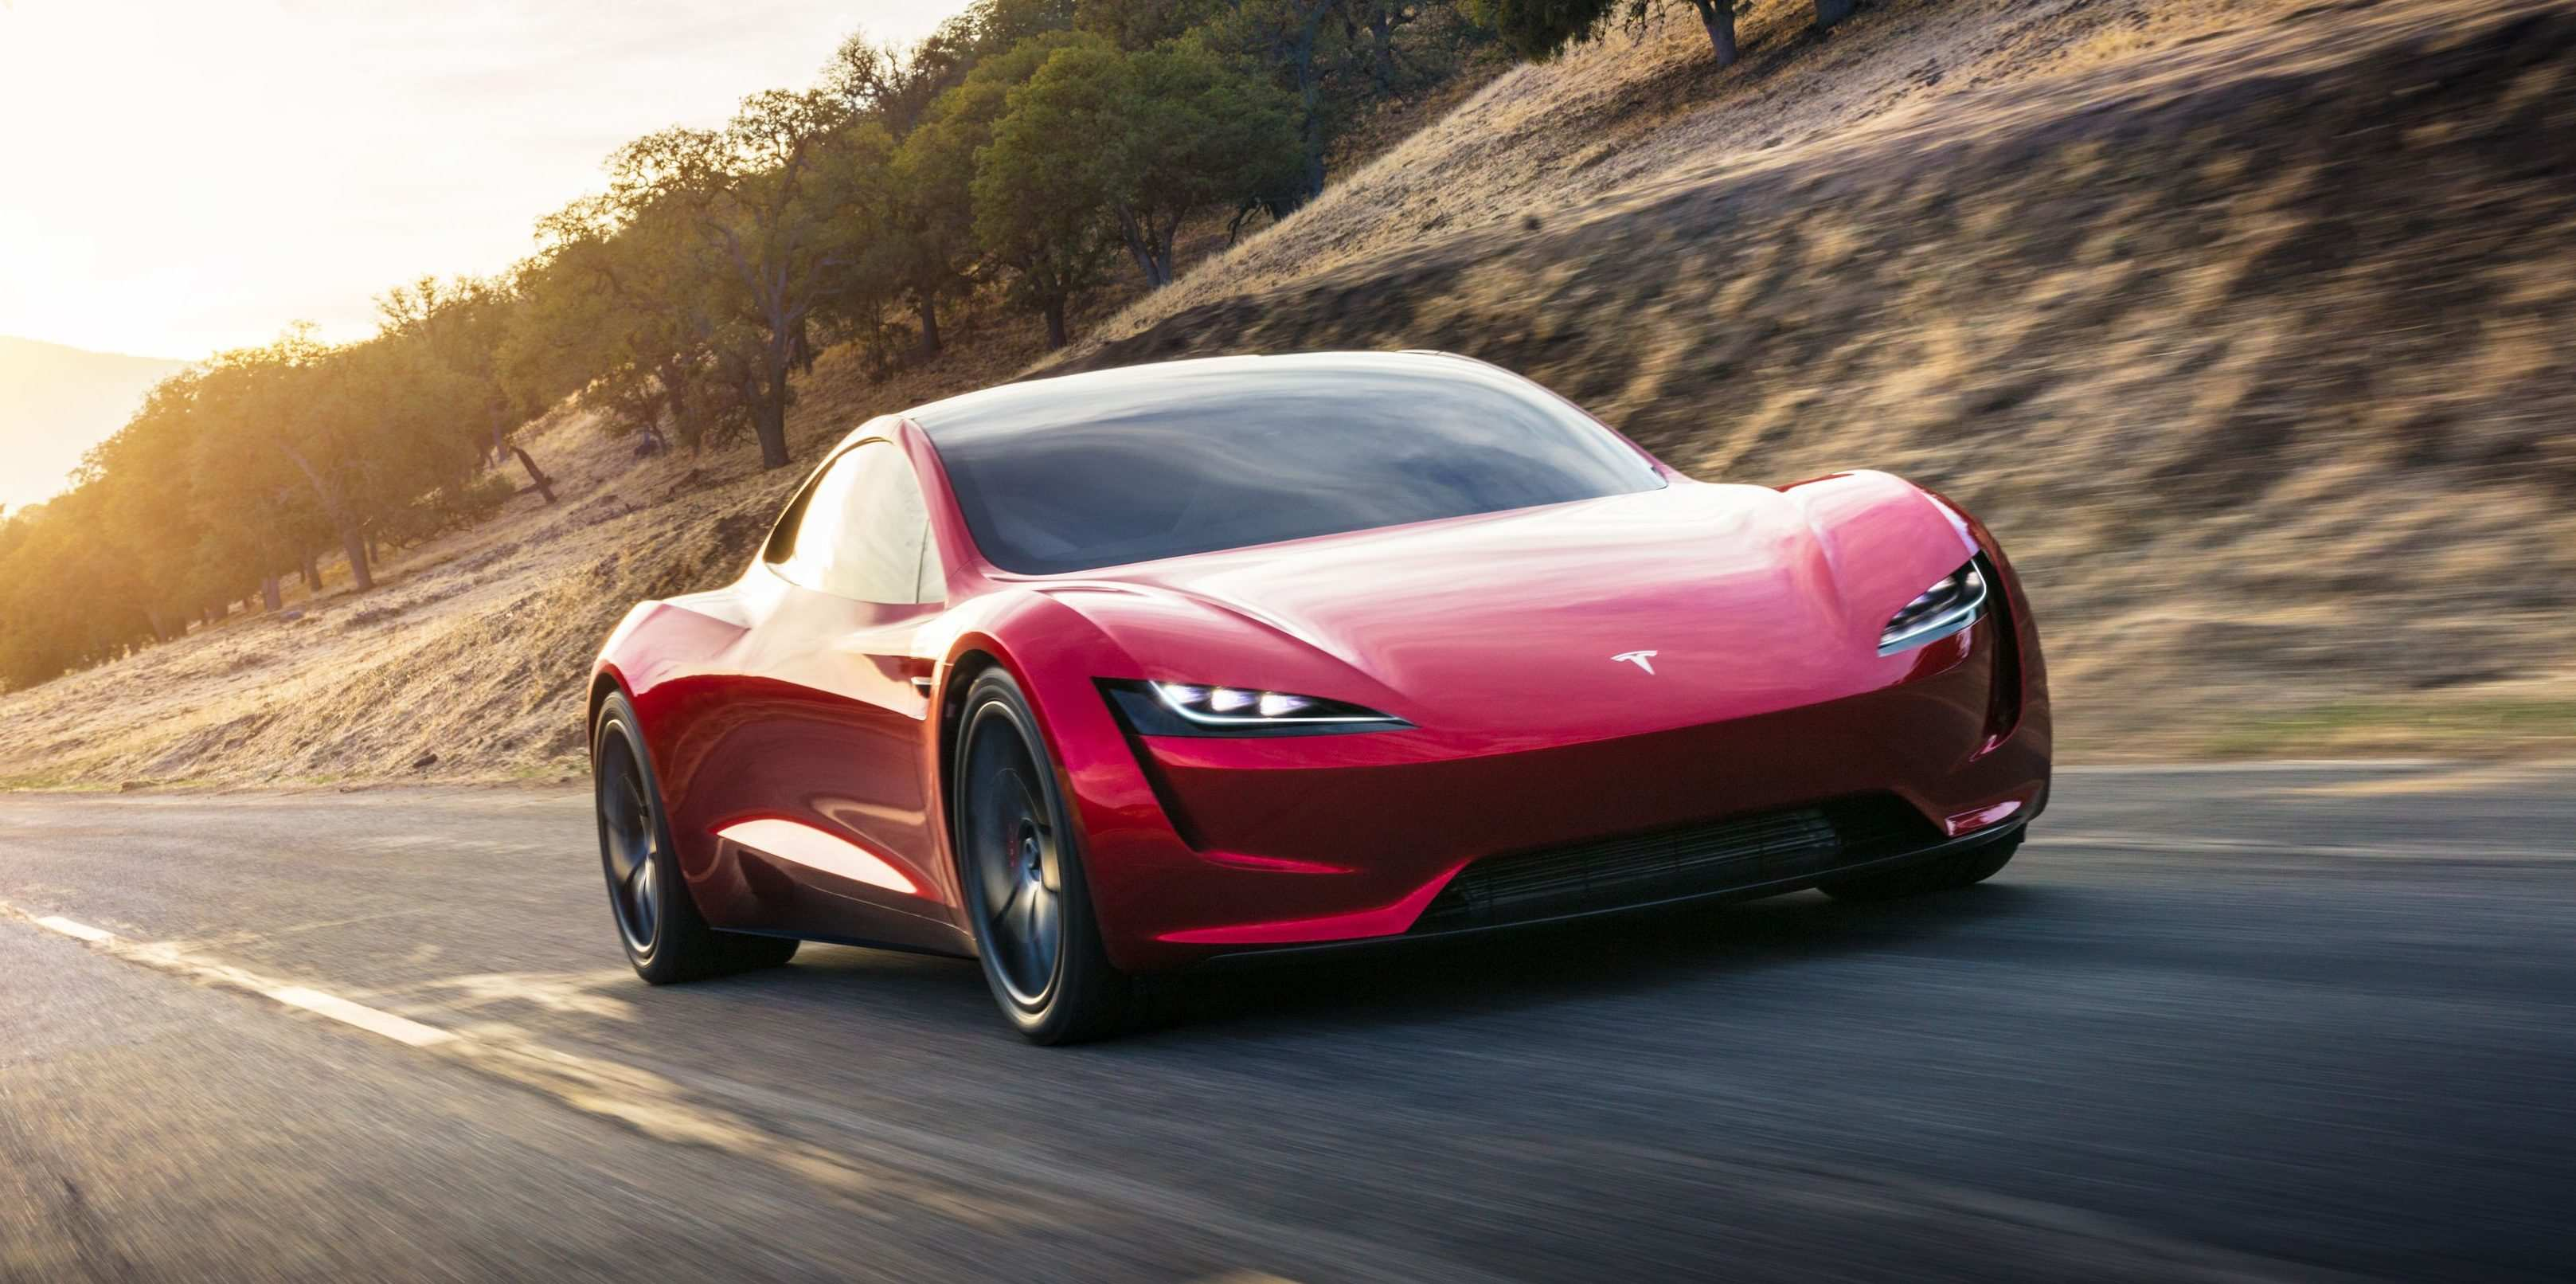 46 Best Review 2019 Tesla Roadster Model for 2019 Tesla Roadster